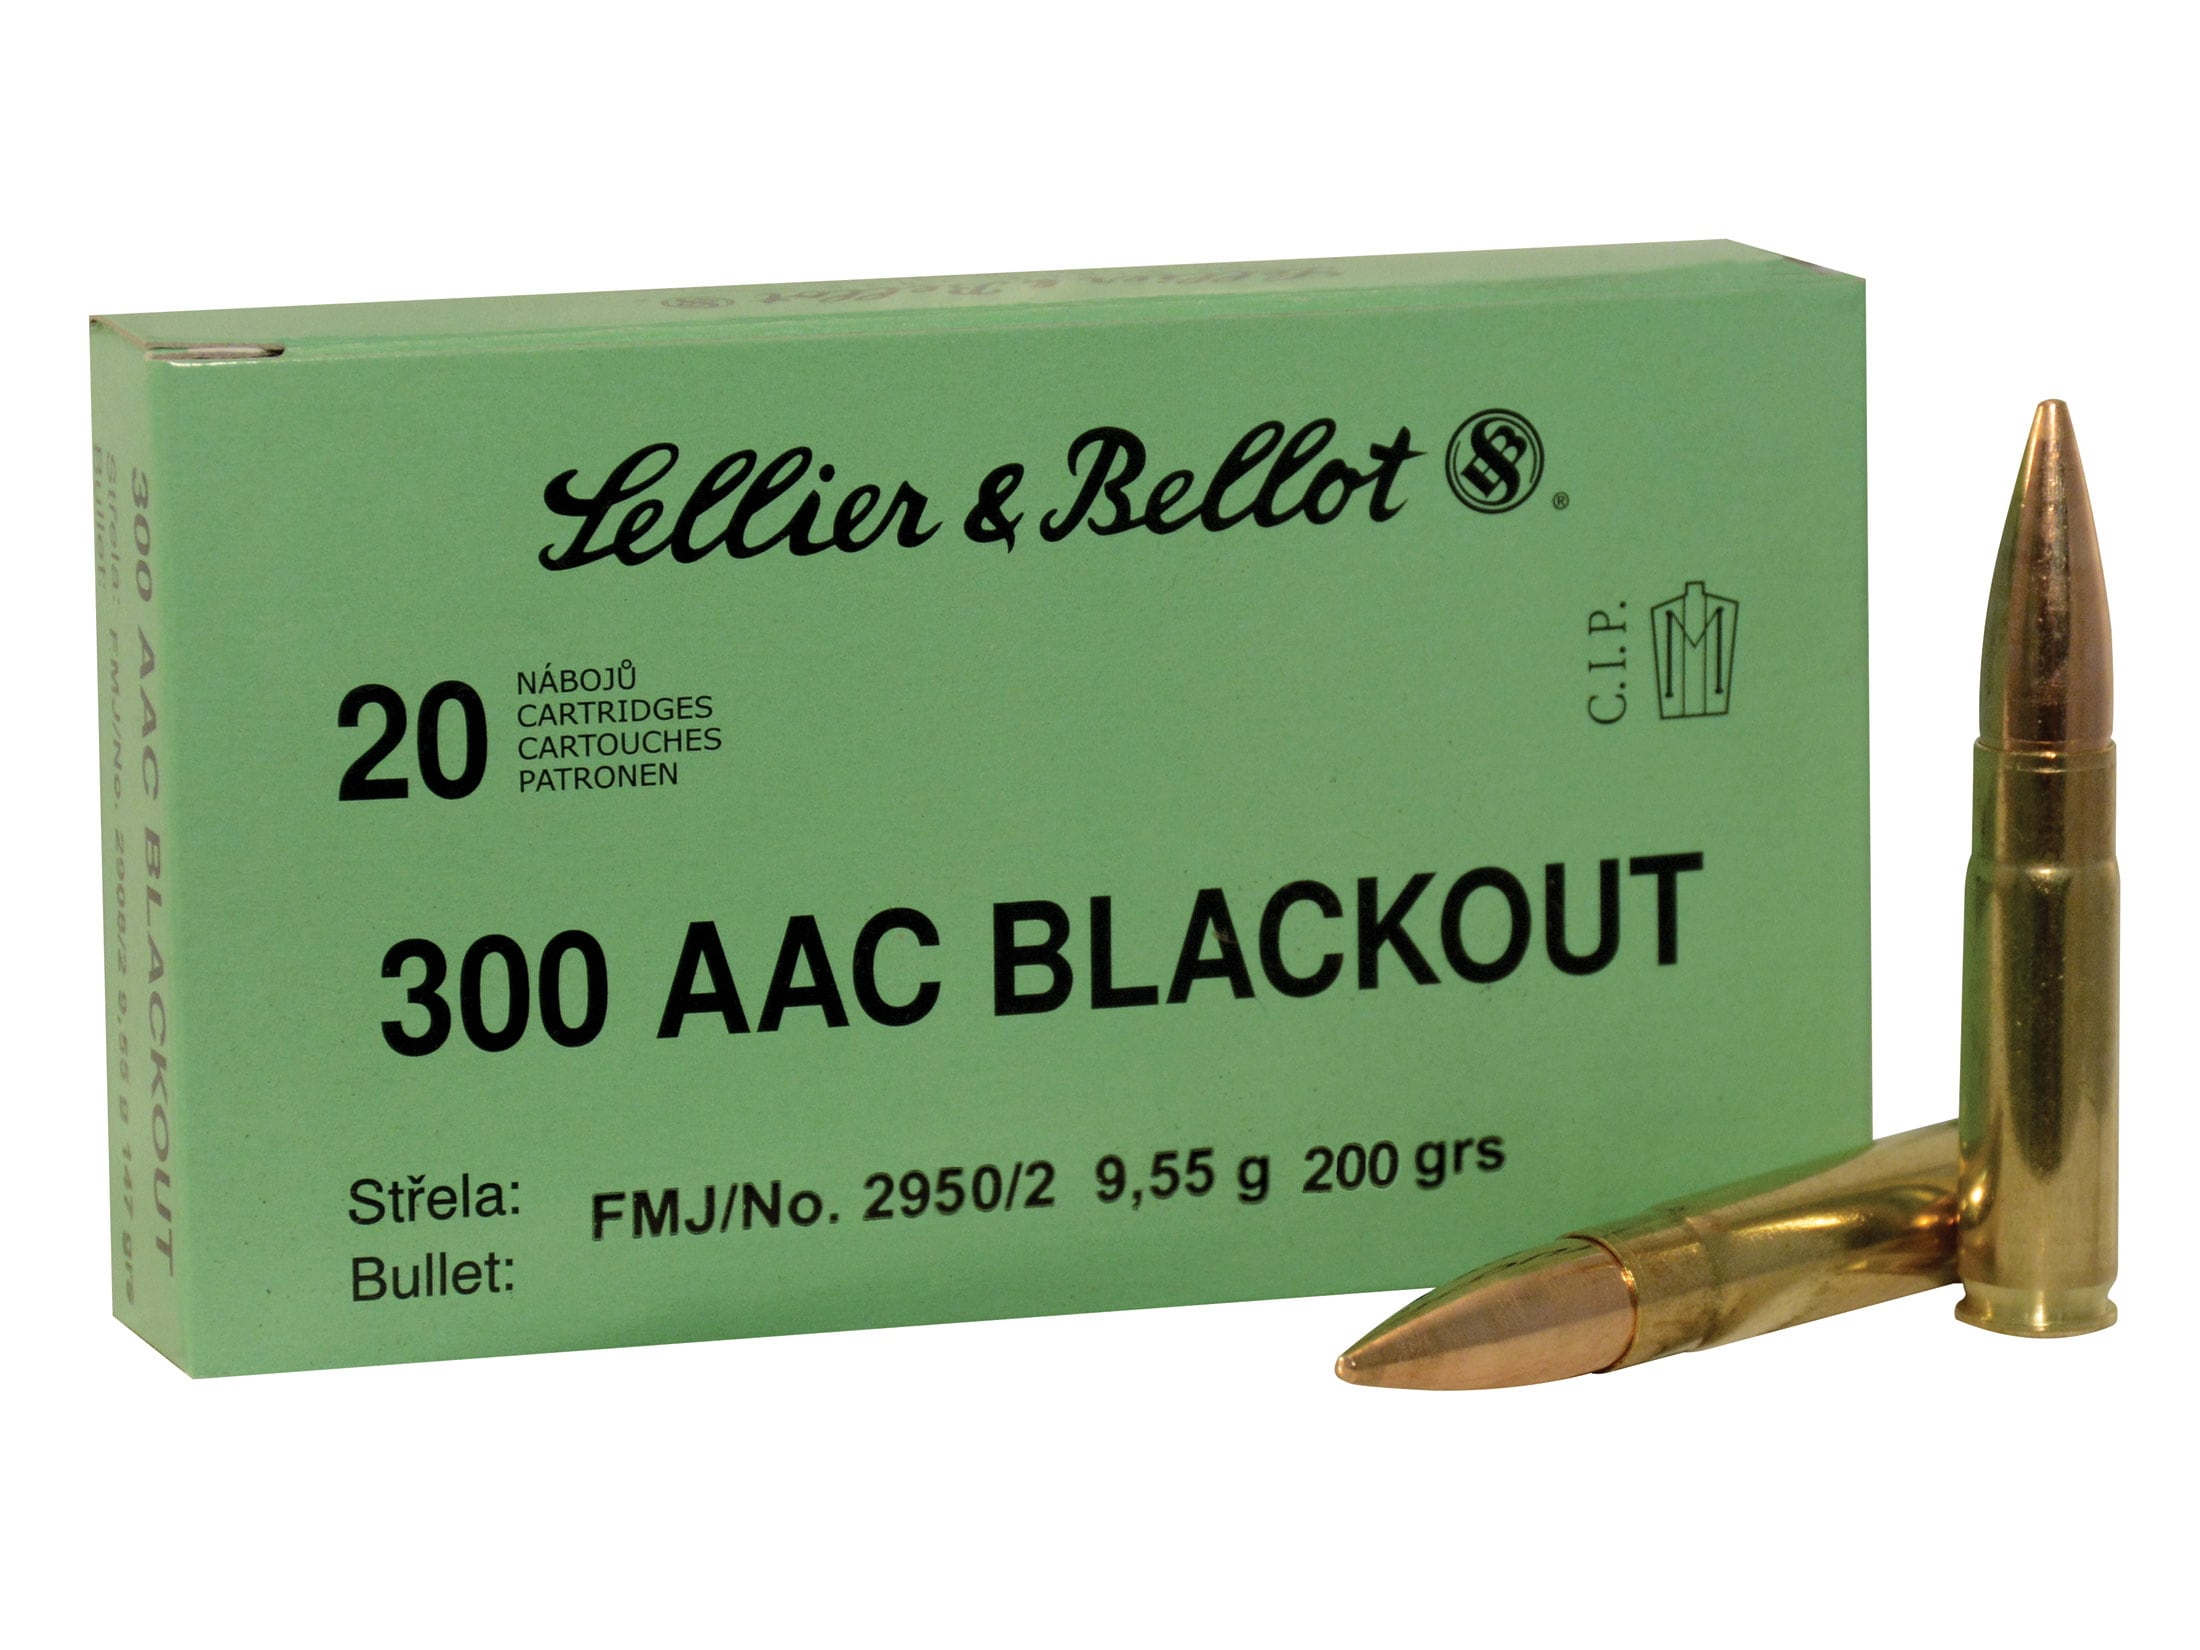 300 AAC Blackout Ammo | 300 AAC Ammo | Shop Now and Save @MidwayUSA